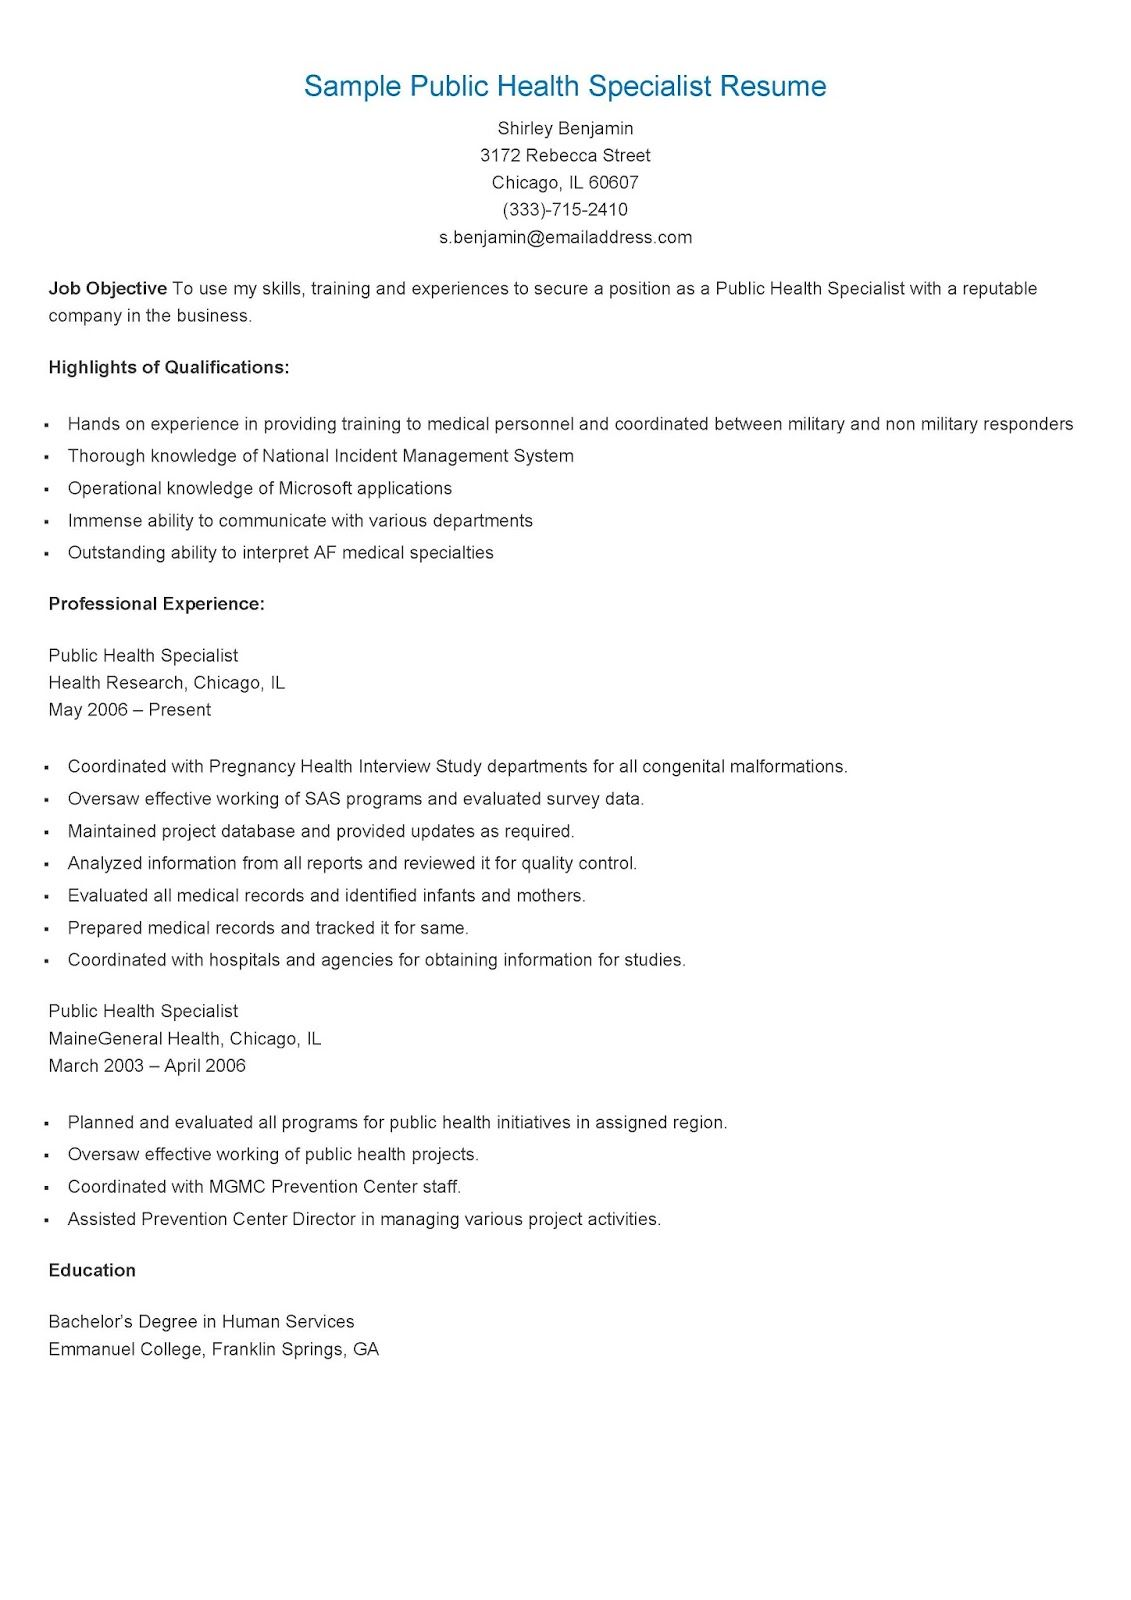 Sample Public Health Specialist Resume Public health